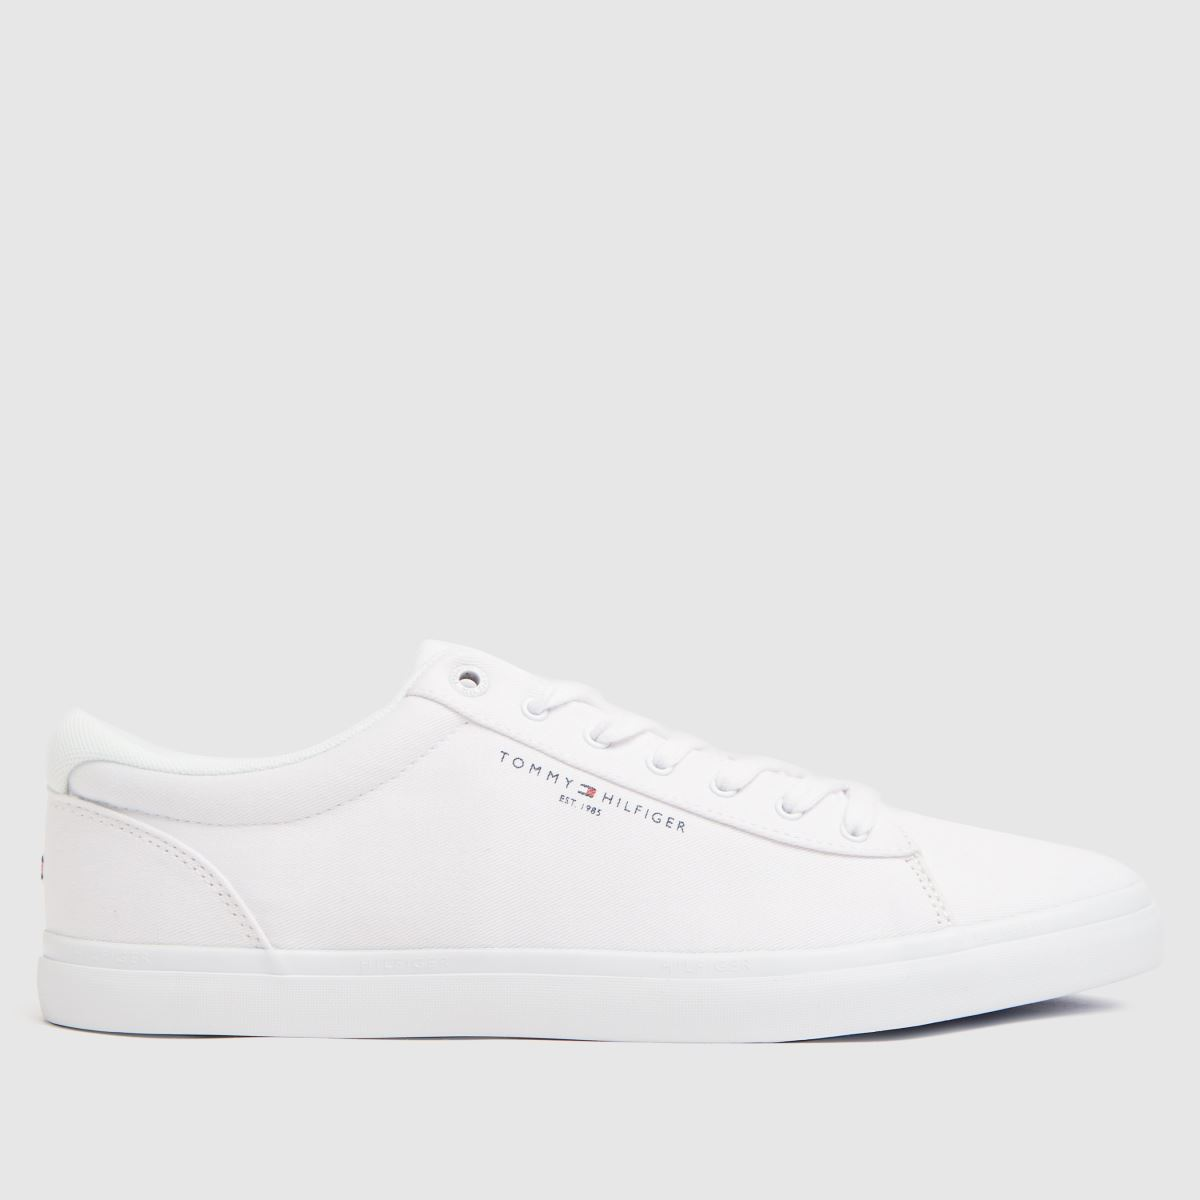 Tommy Hilfiger White Essential Stripes Trainers